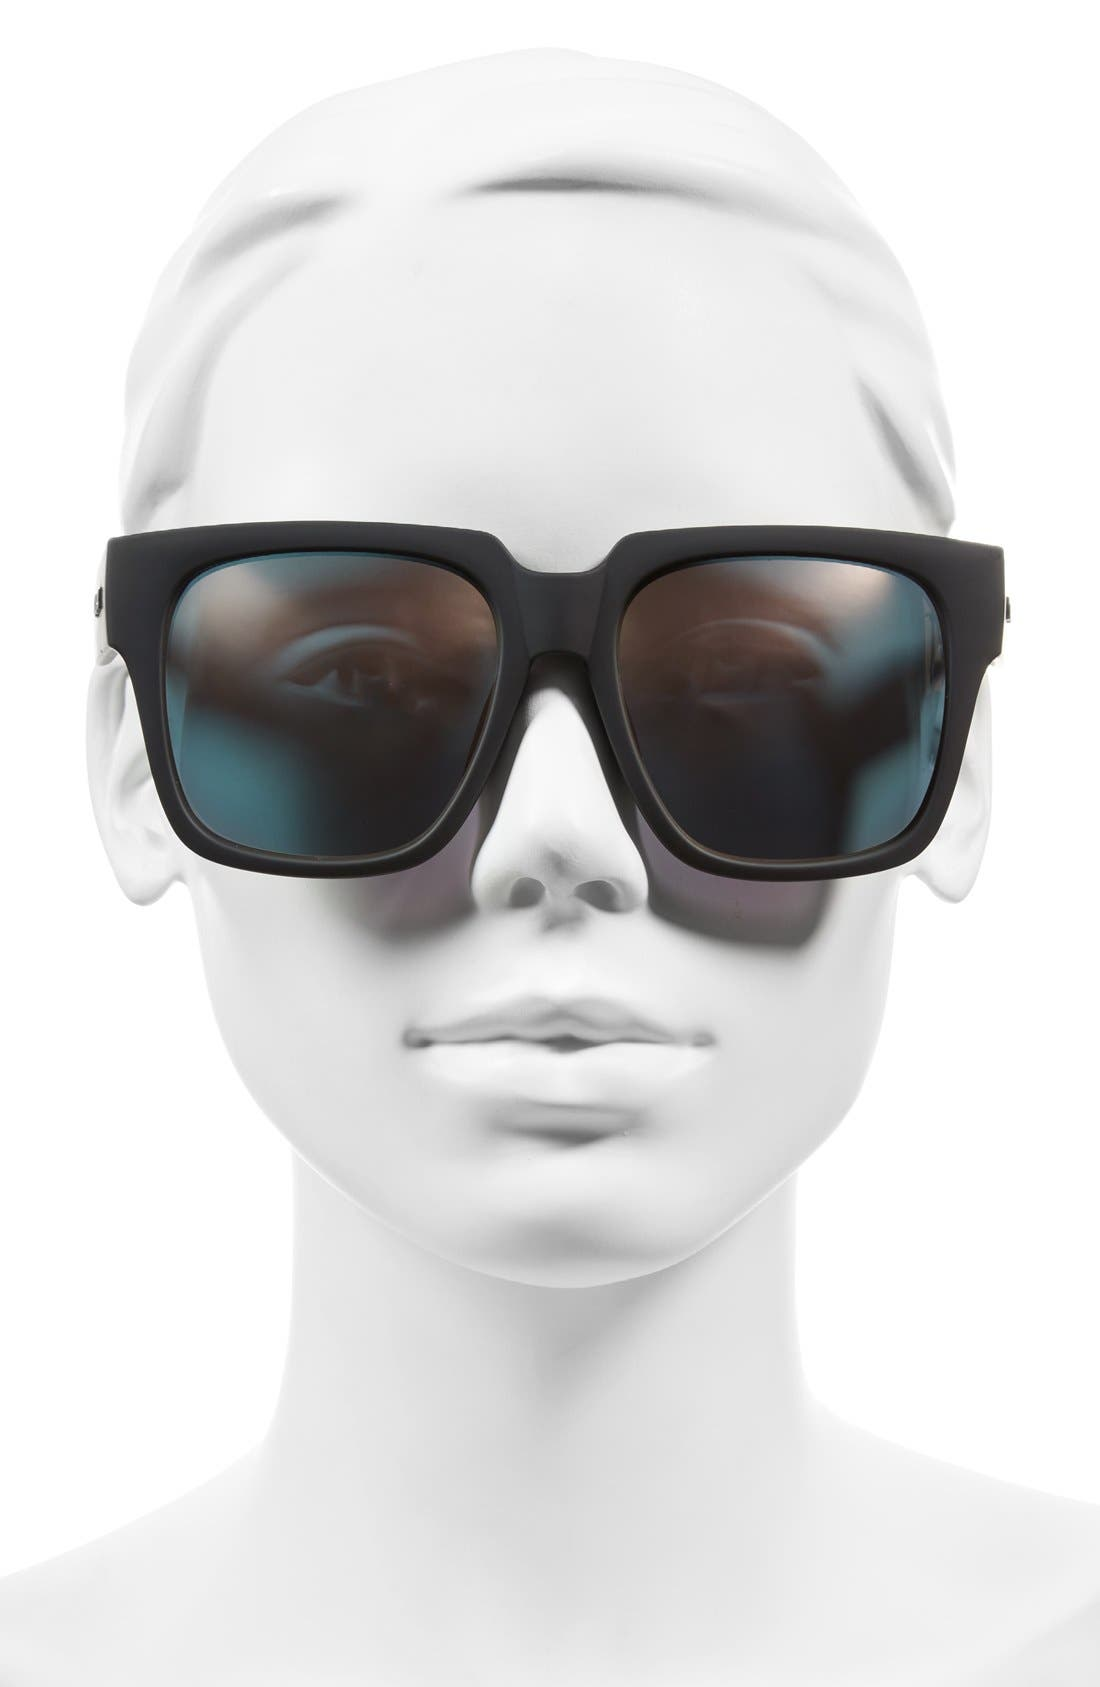 'On the Prowl' 55mm Square Sunglasses,                             Alternate thumbnail 6, color,